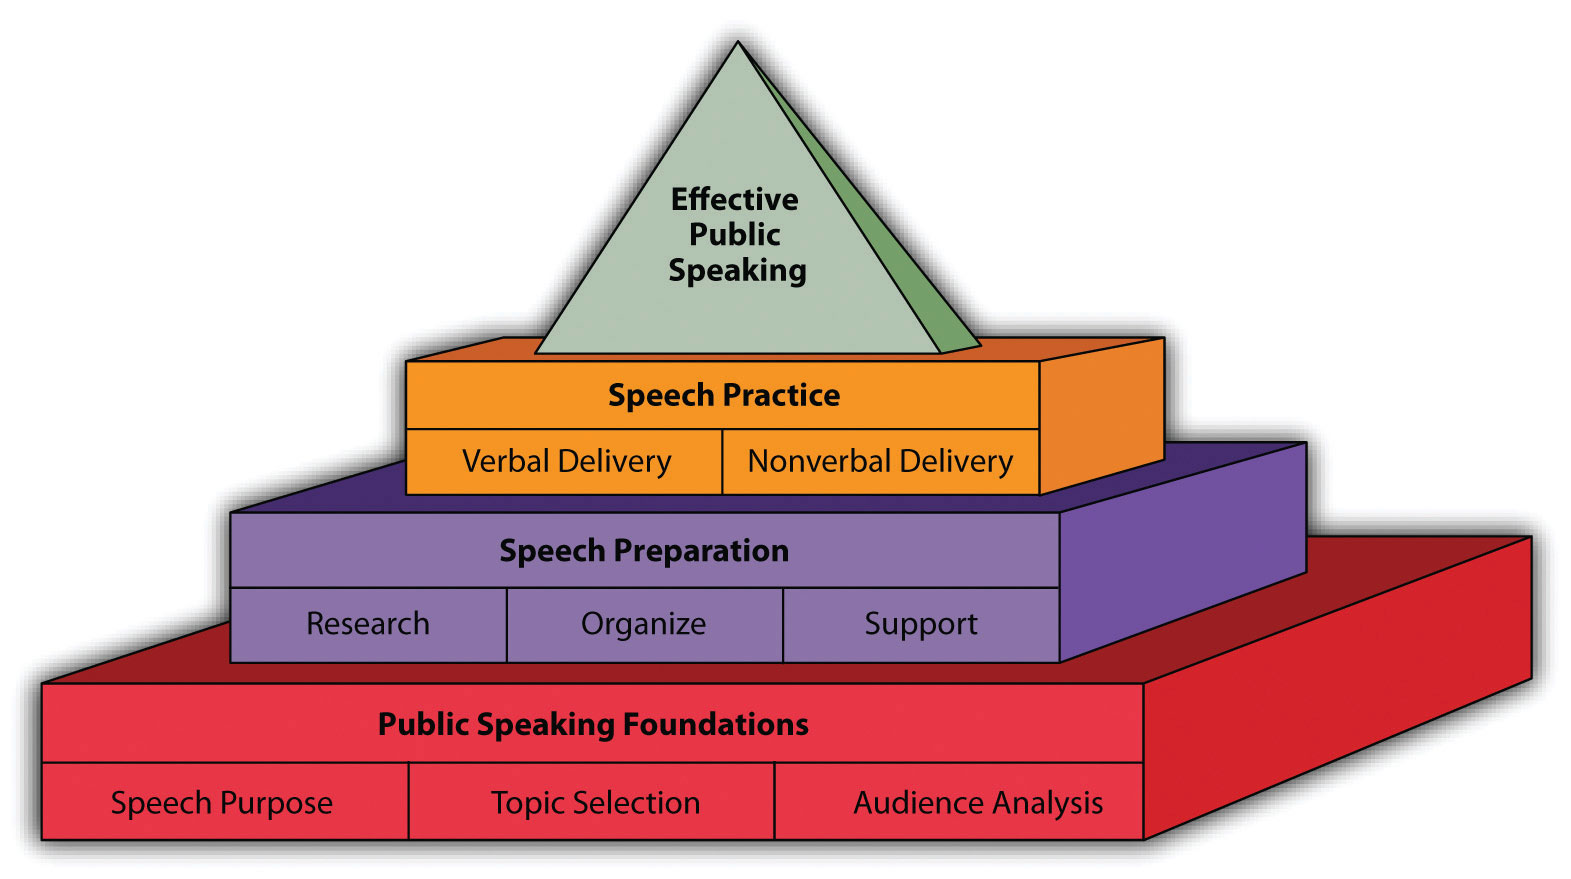 importance of public speaking This section the importance of public speaking: an essential skill of a leader talks about the role of public speaking for a leader and introduces several principles, tips and techniques for you to become a more effective public speaker as a leader, the importance of public speaking cannot be overemphasized.